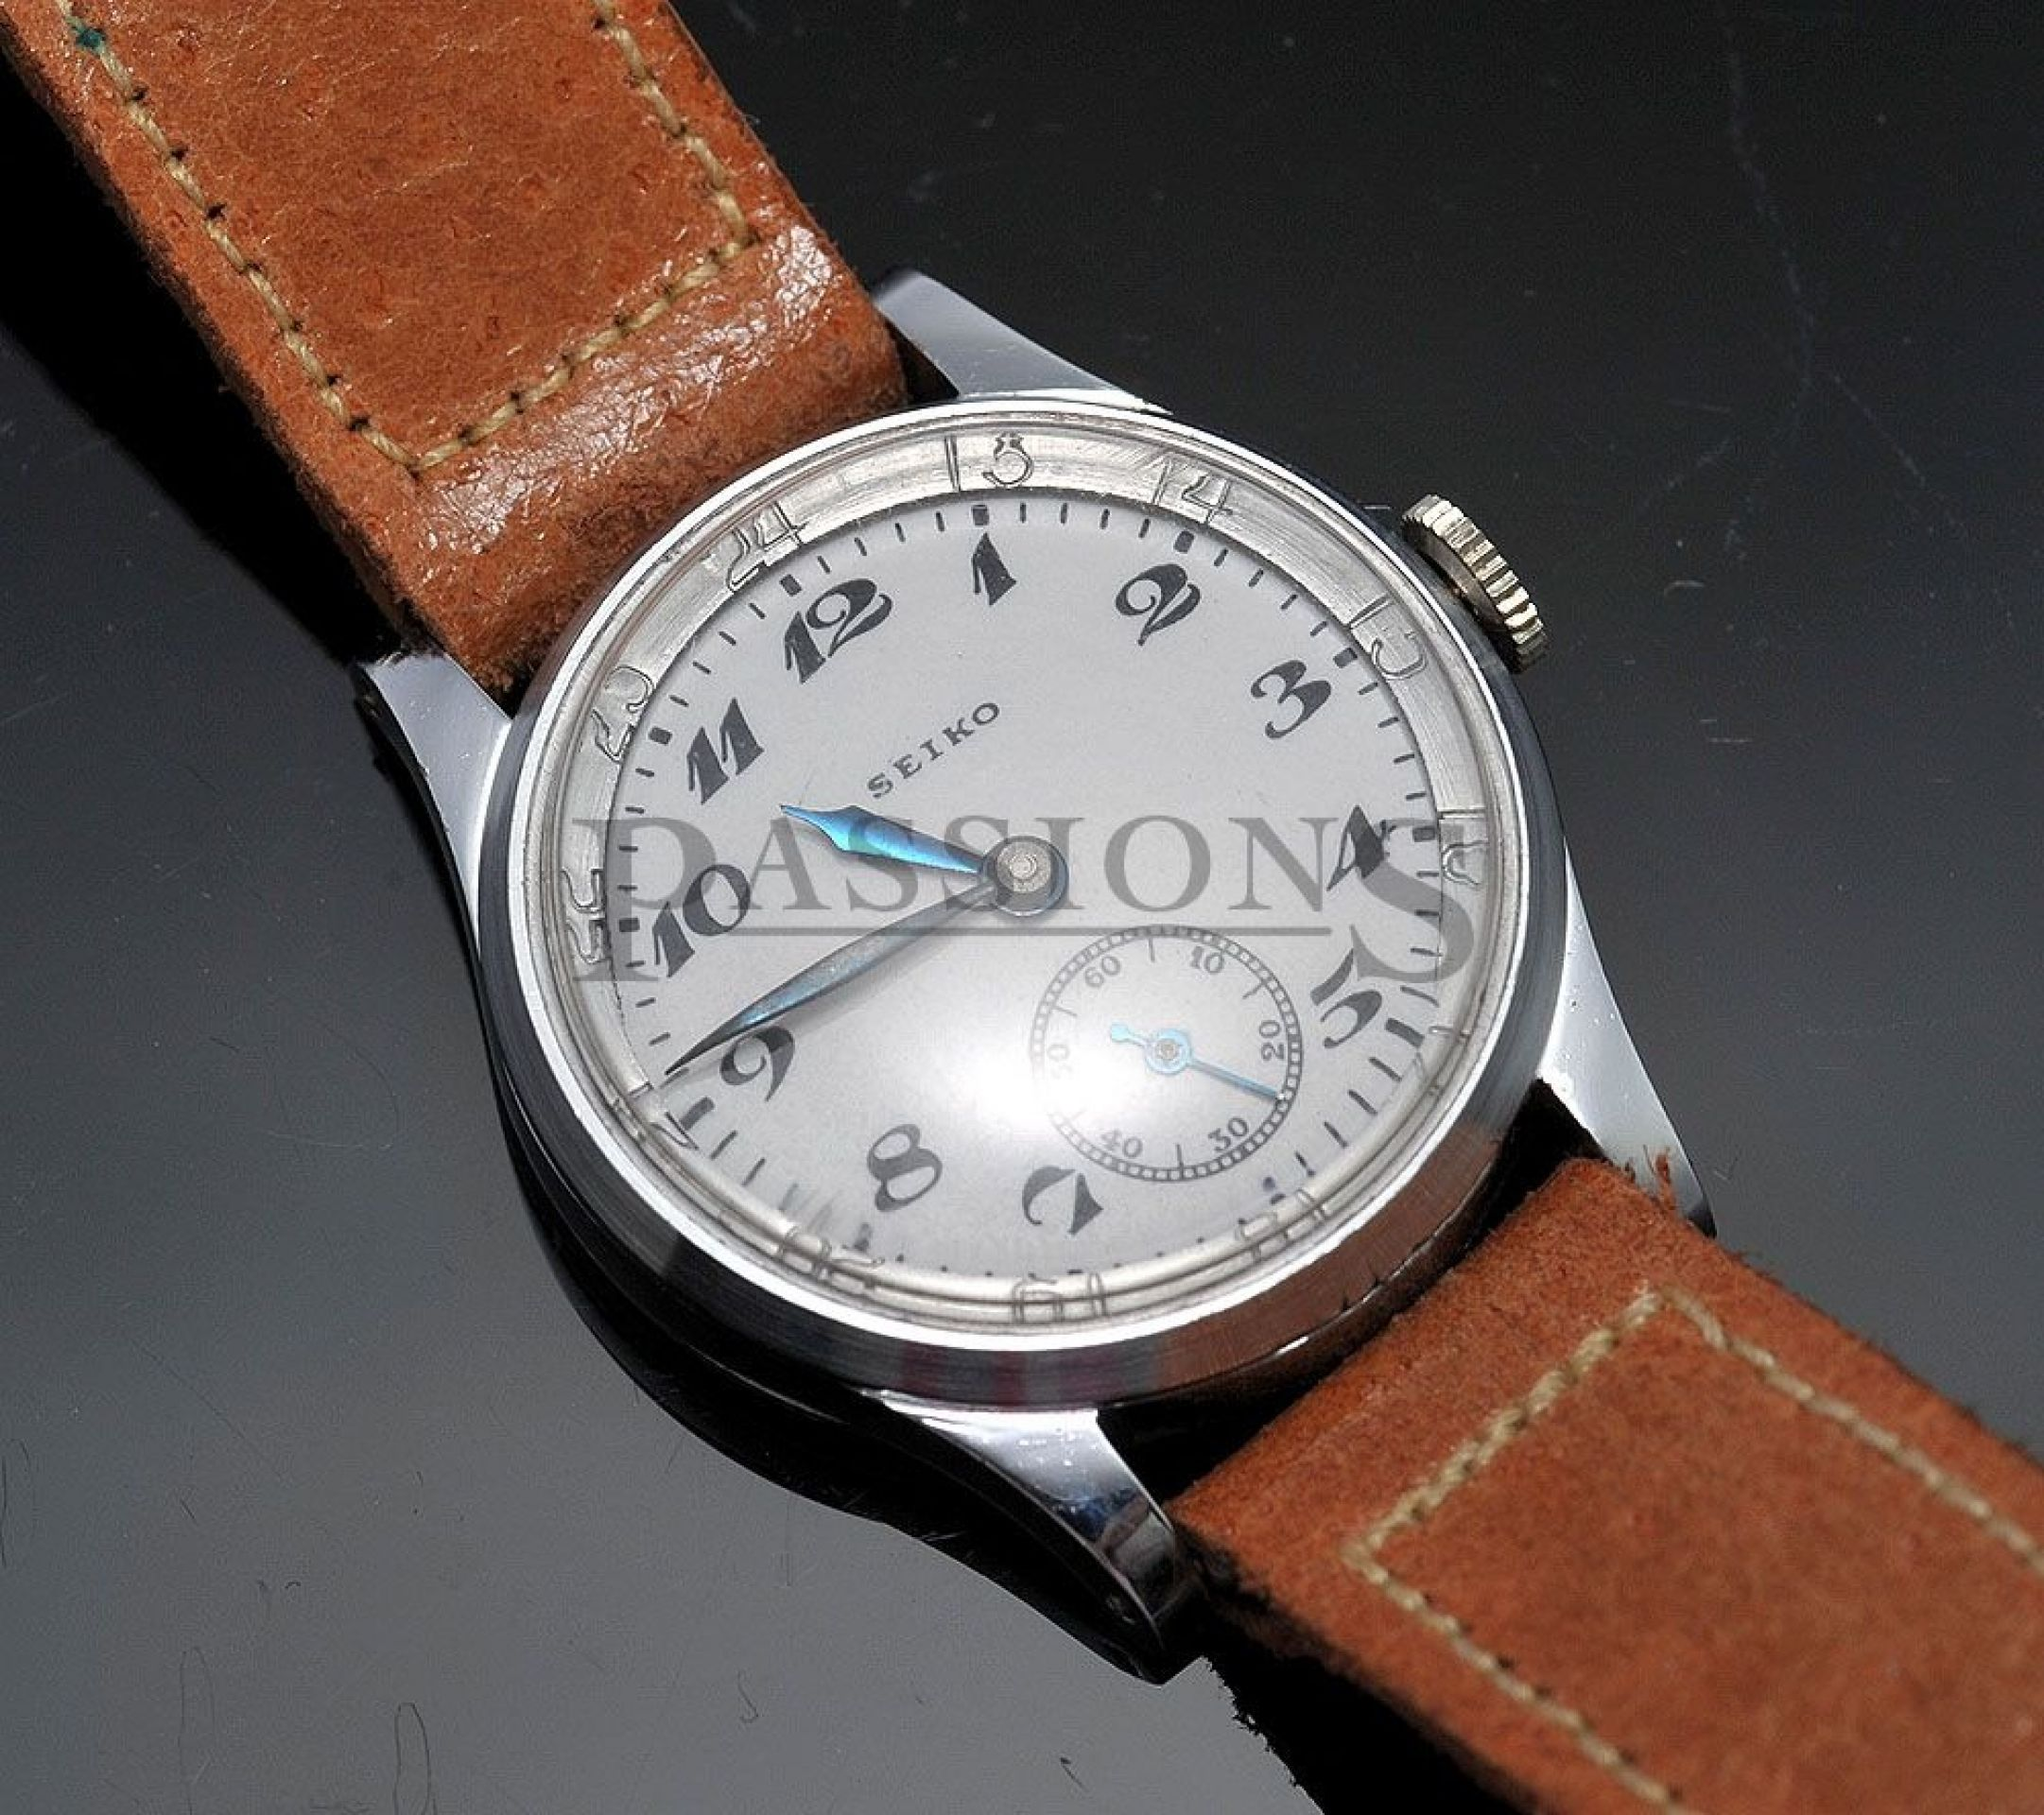 Seikosha, C.1920-30s military watch with enamel dial in Nickeled case